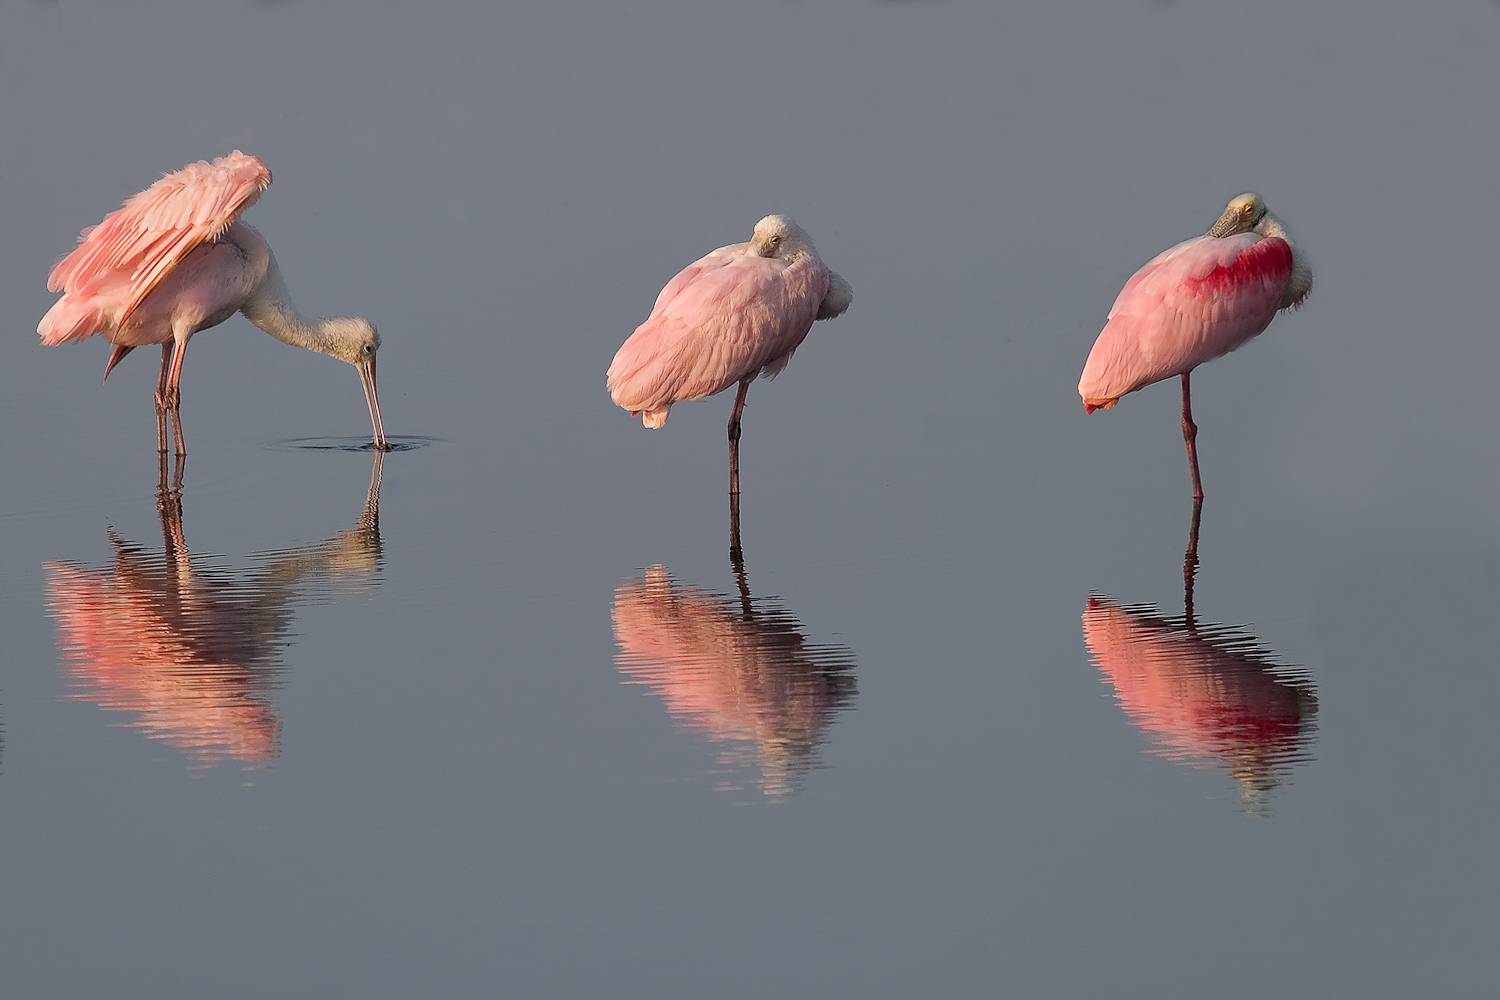 Three reflected roseate spoonbills at Merritt Island National Wildlife Refuge. Image via Flickr by Matthew Paulson